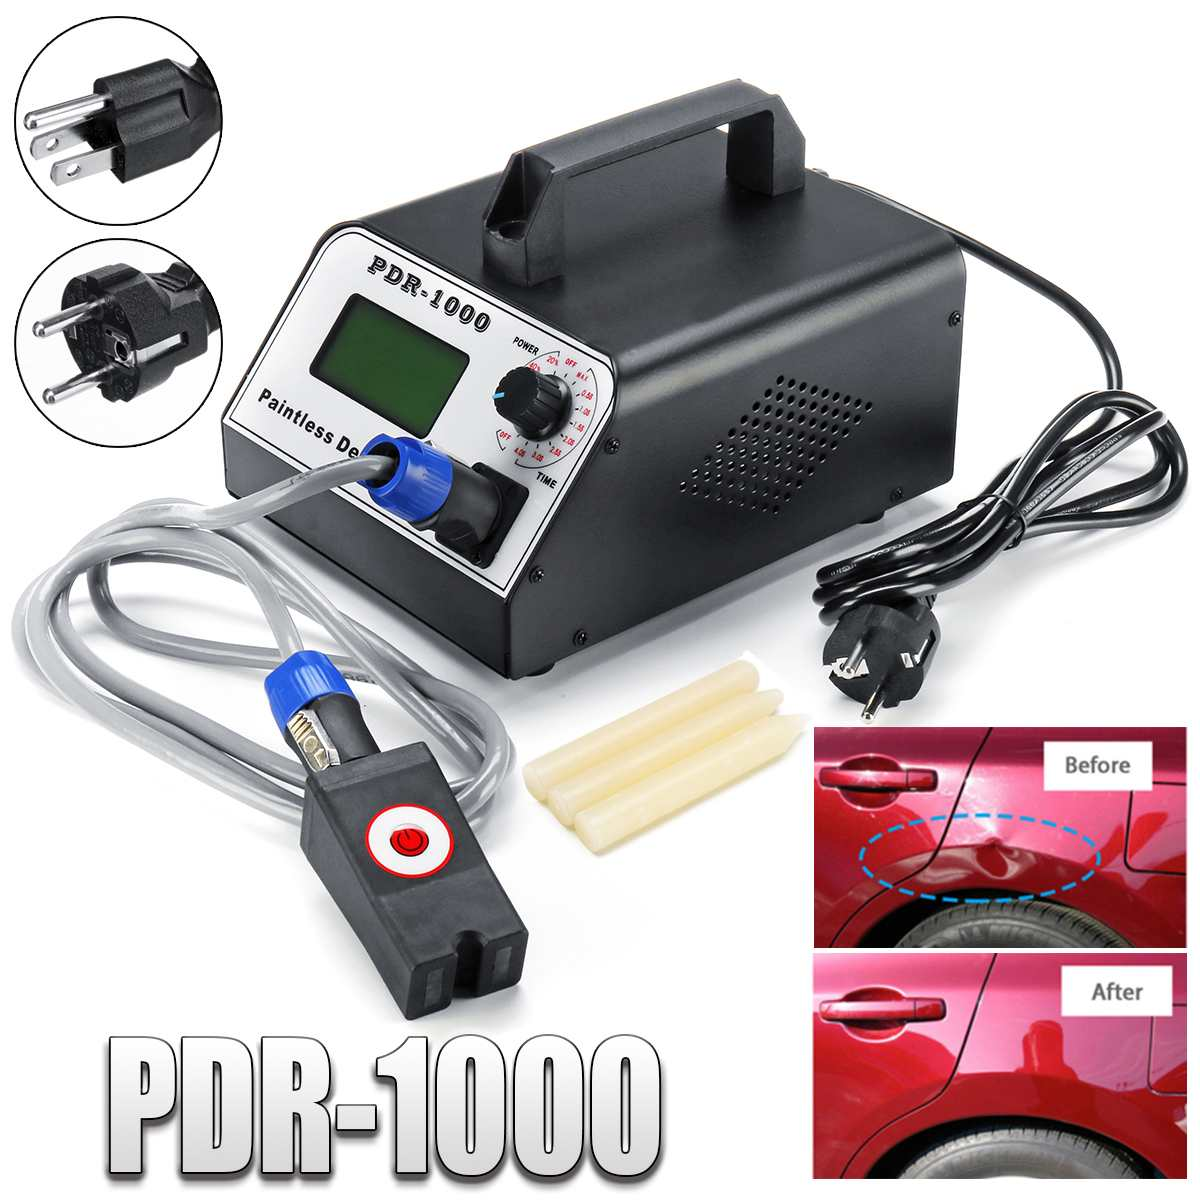 Car Induction Heater Paintless Dent Repair Remover 220V 1000W for Removing Dents Sheet Metal Tool Sets for Car Body Repair